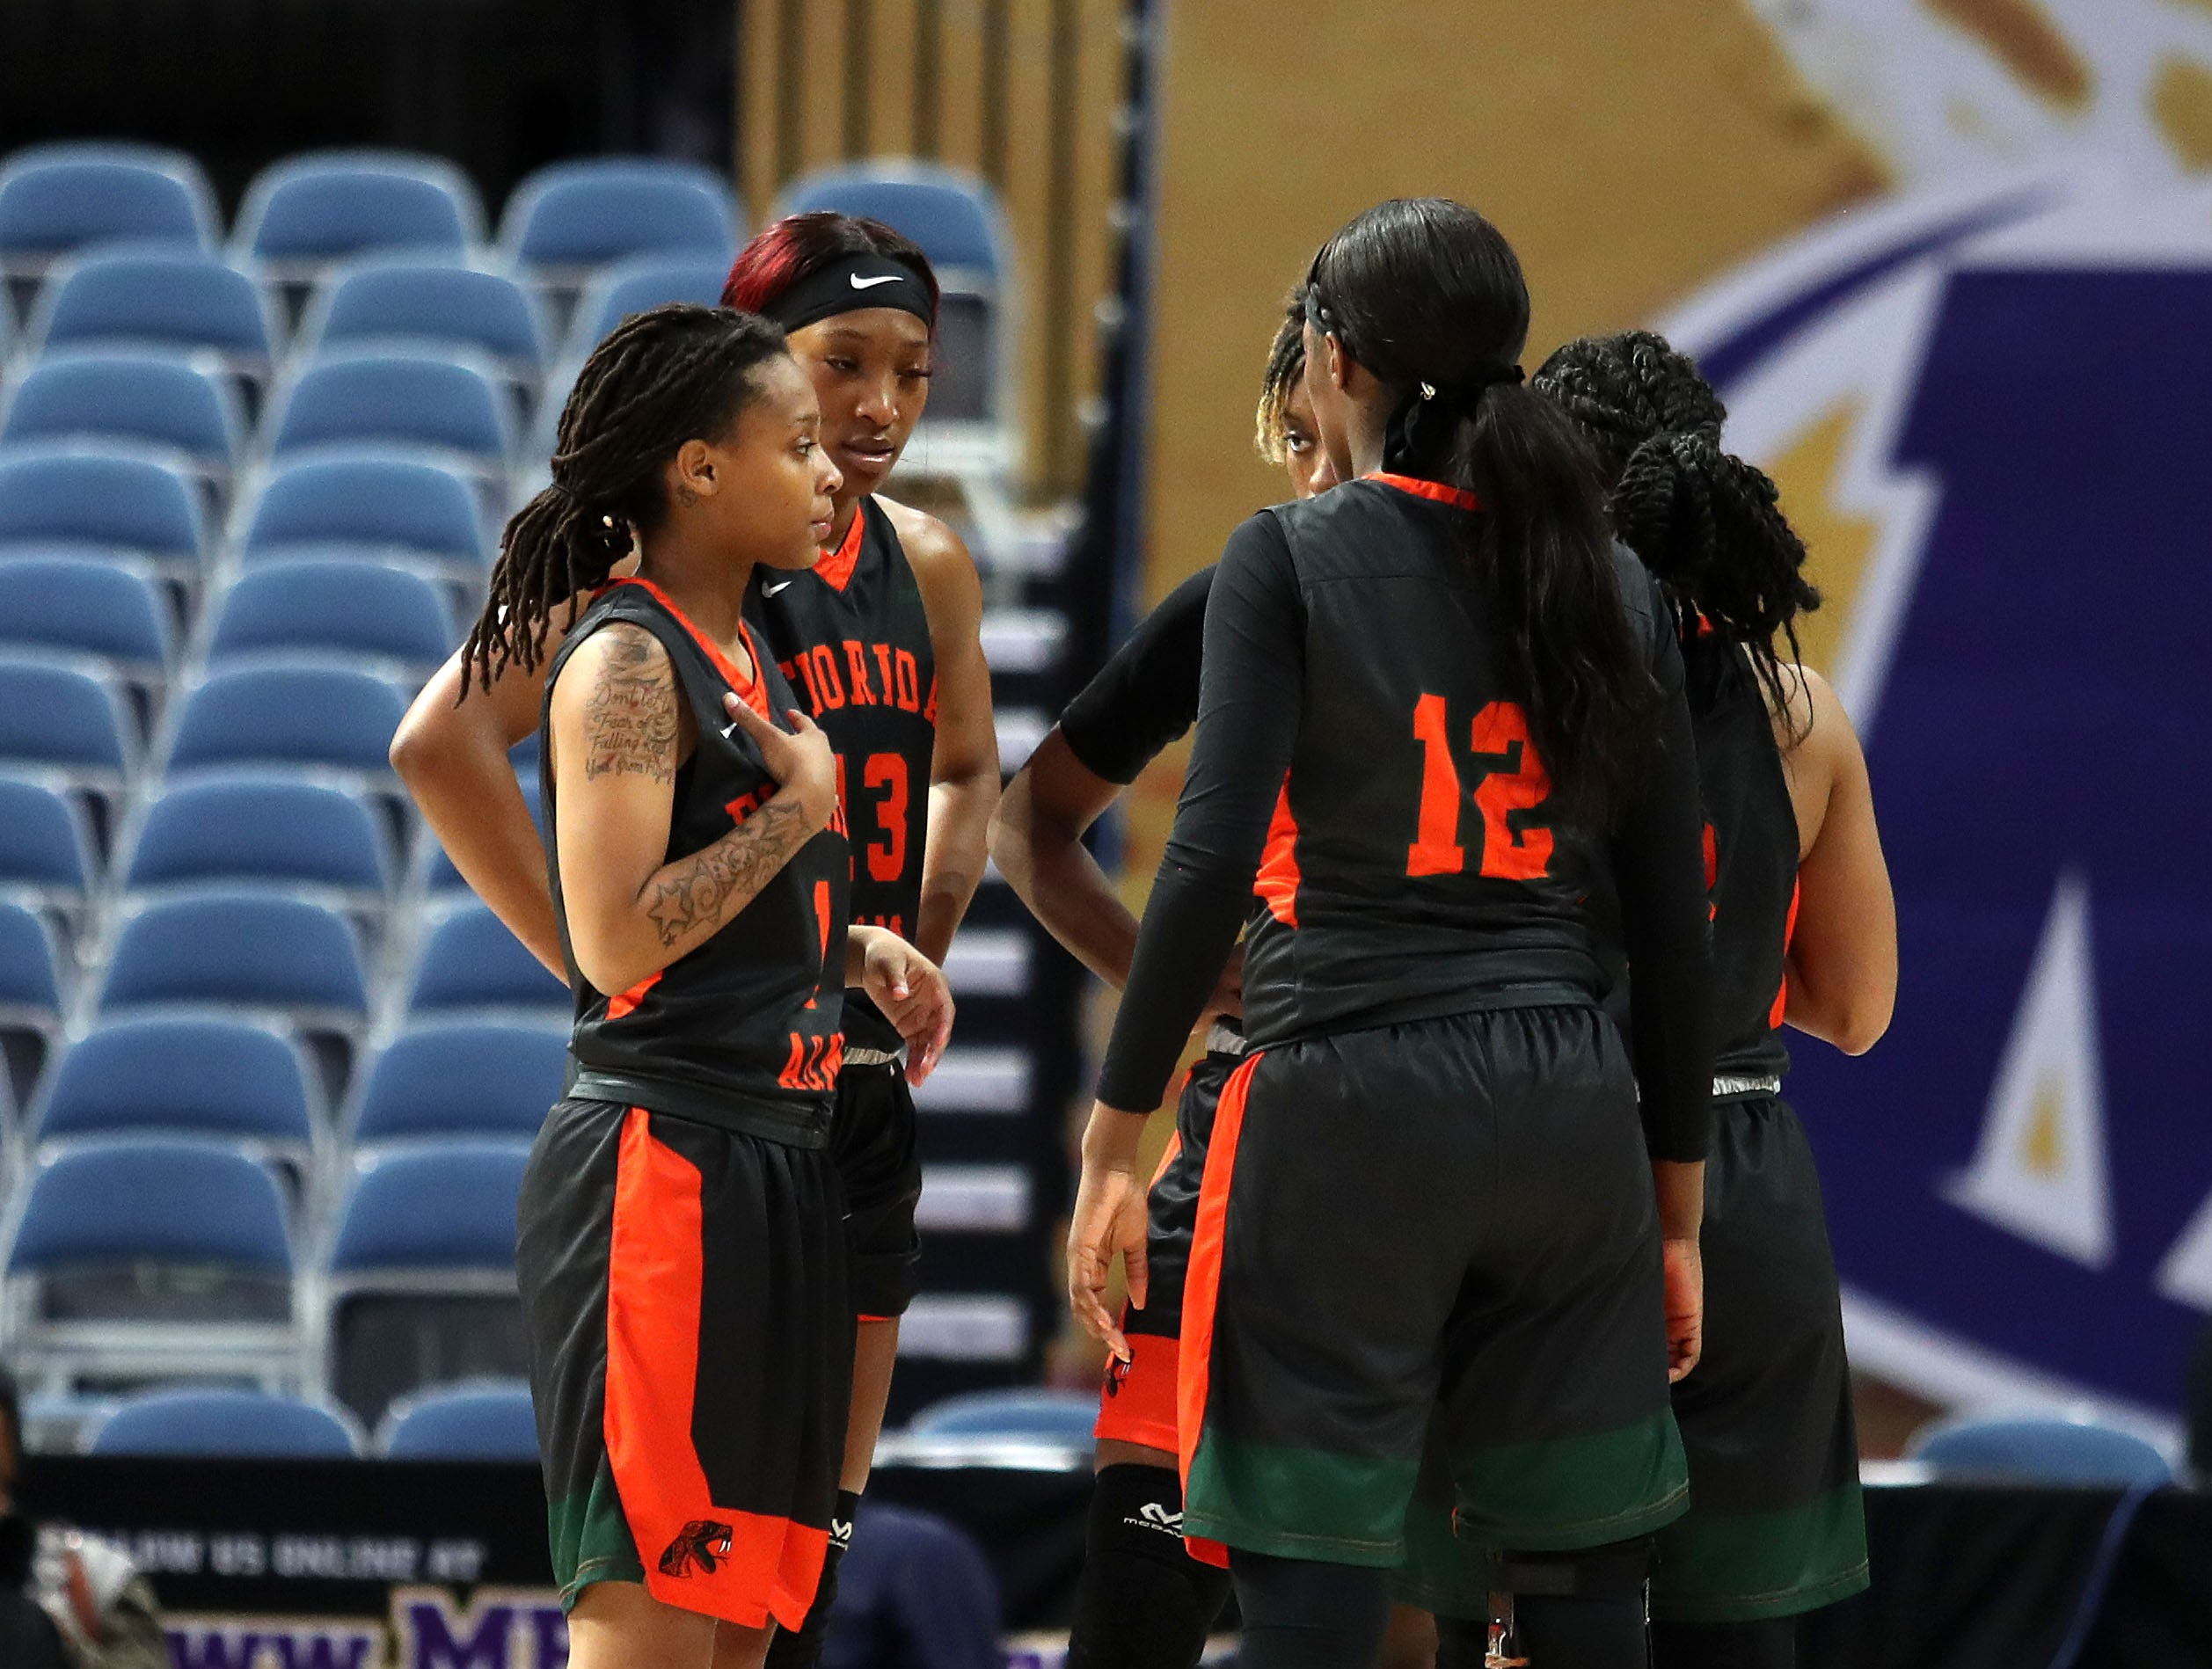 FAMU players huddle up on the court during the first round of the MEAC tournament versus Howard on Monday, March 11, 2019.